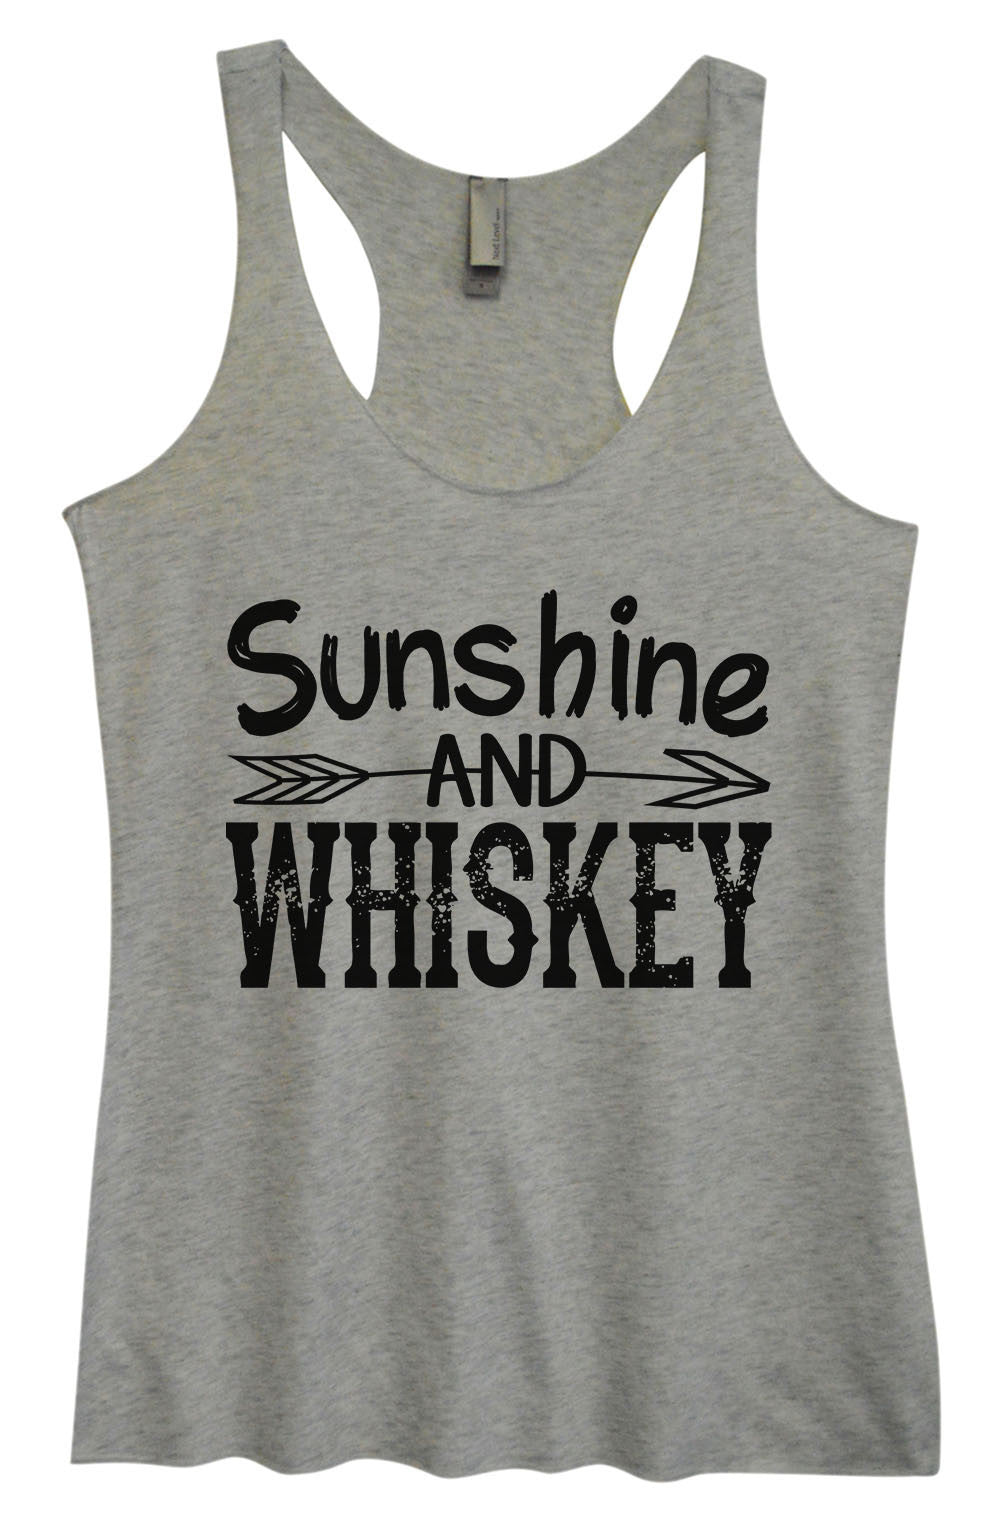 Womens Fashion Triblend Tank Top - Sunshine And Whiskey - Tri-1406 - Funny Shirts Tank Tops Burnouts and Triblends  - 2